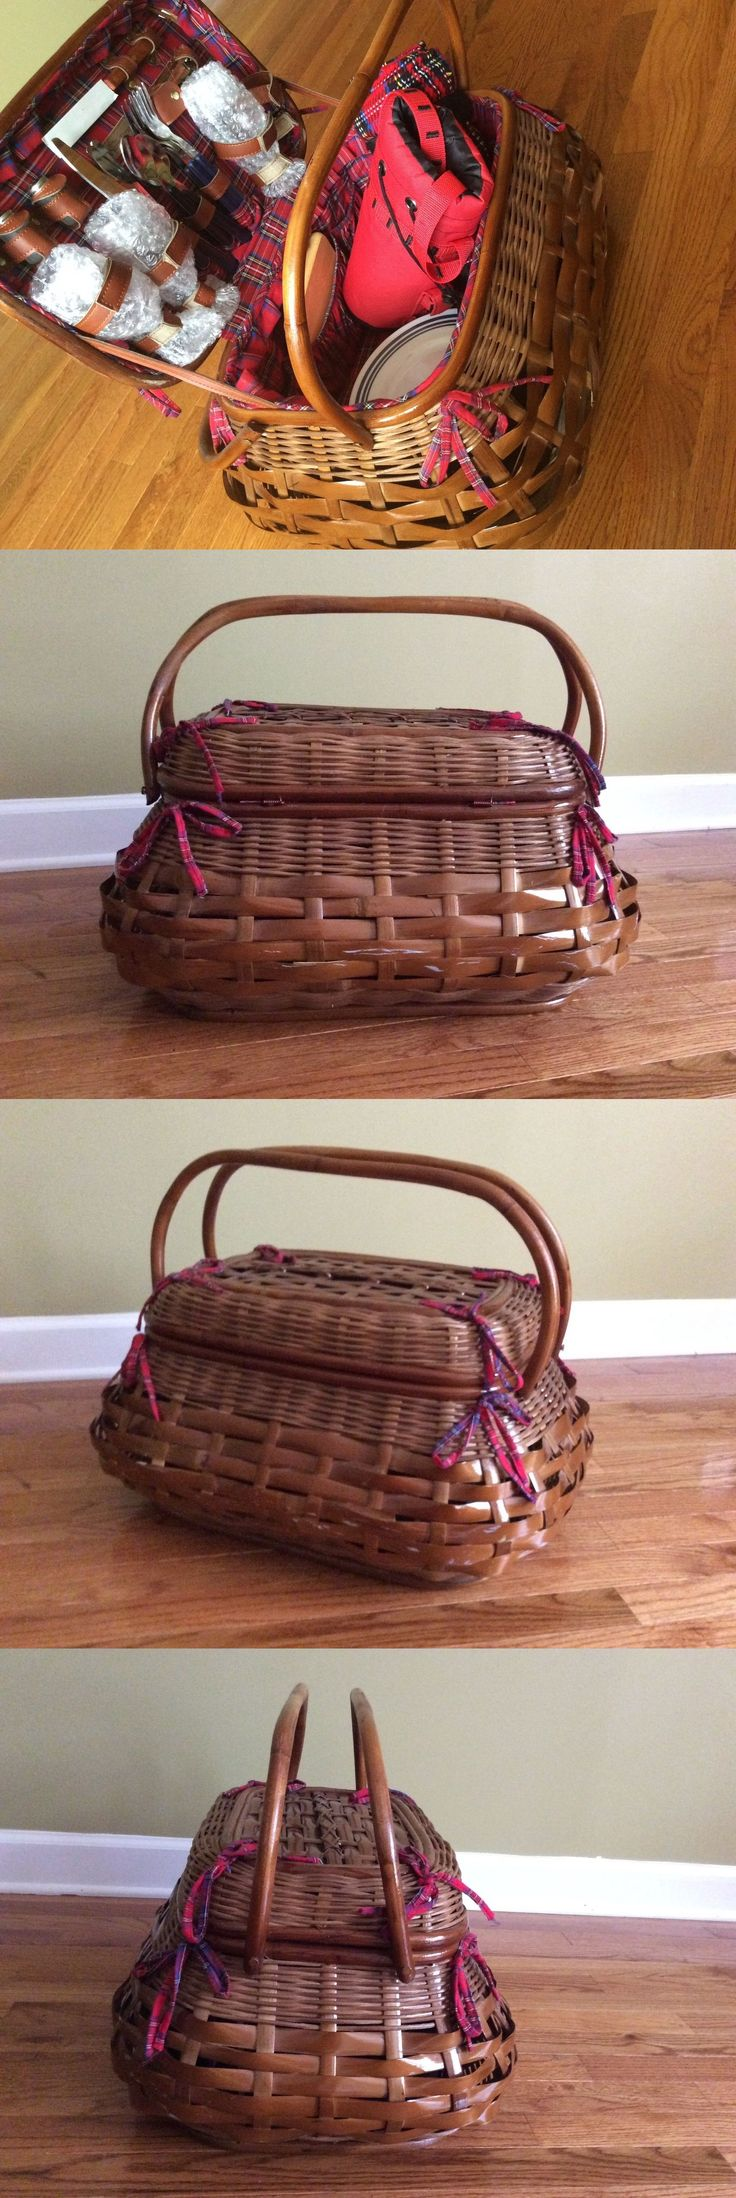 Picnic Baskets and Backpacks 38249: Highlander Picnic Basket Set Perfect For Four Picnic Time -> BUY IT NOW ONLY: $99 on eBay!